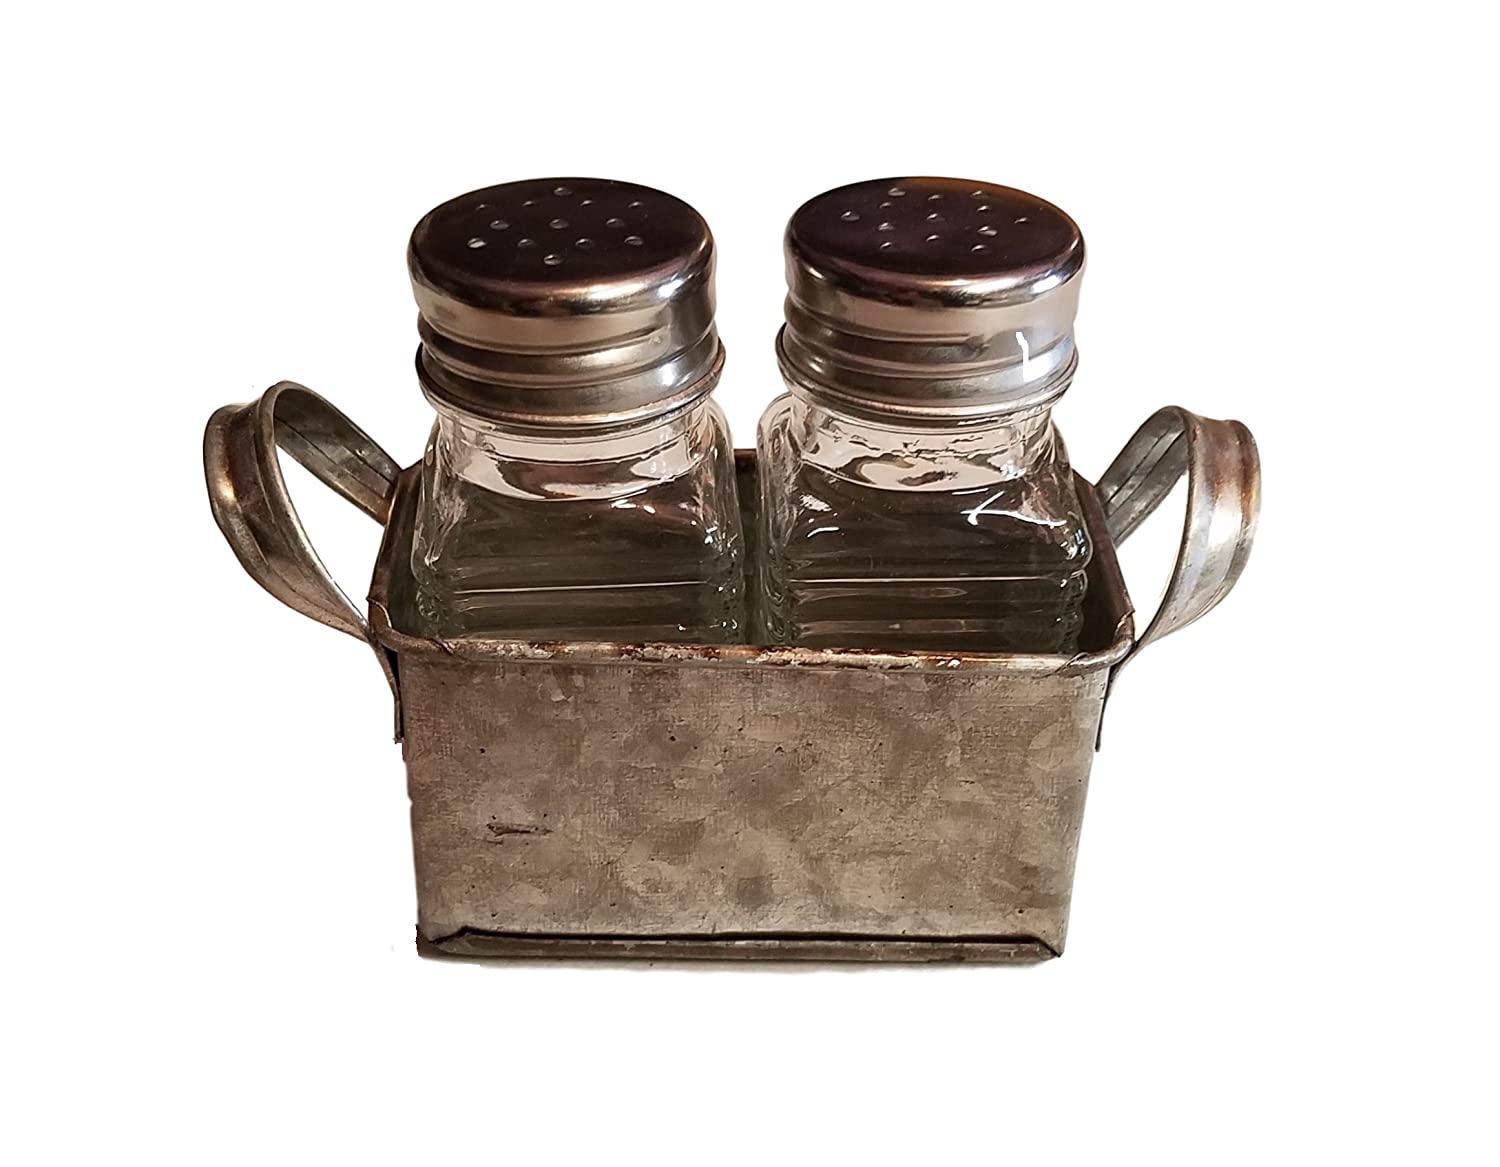 Amazon.com: Industrial Salt and Pepper Shaker Set in Galvanized ...